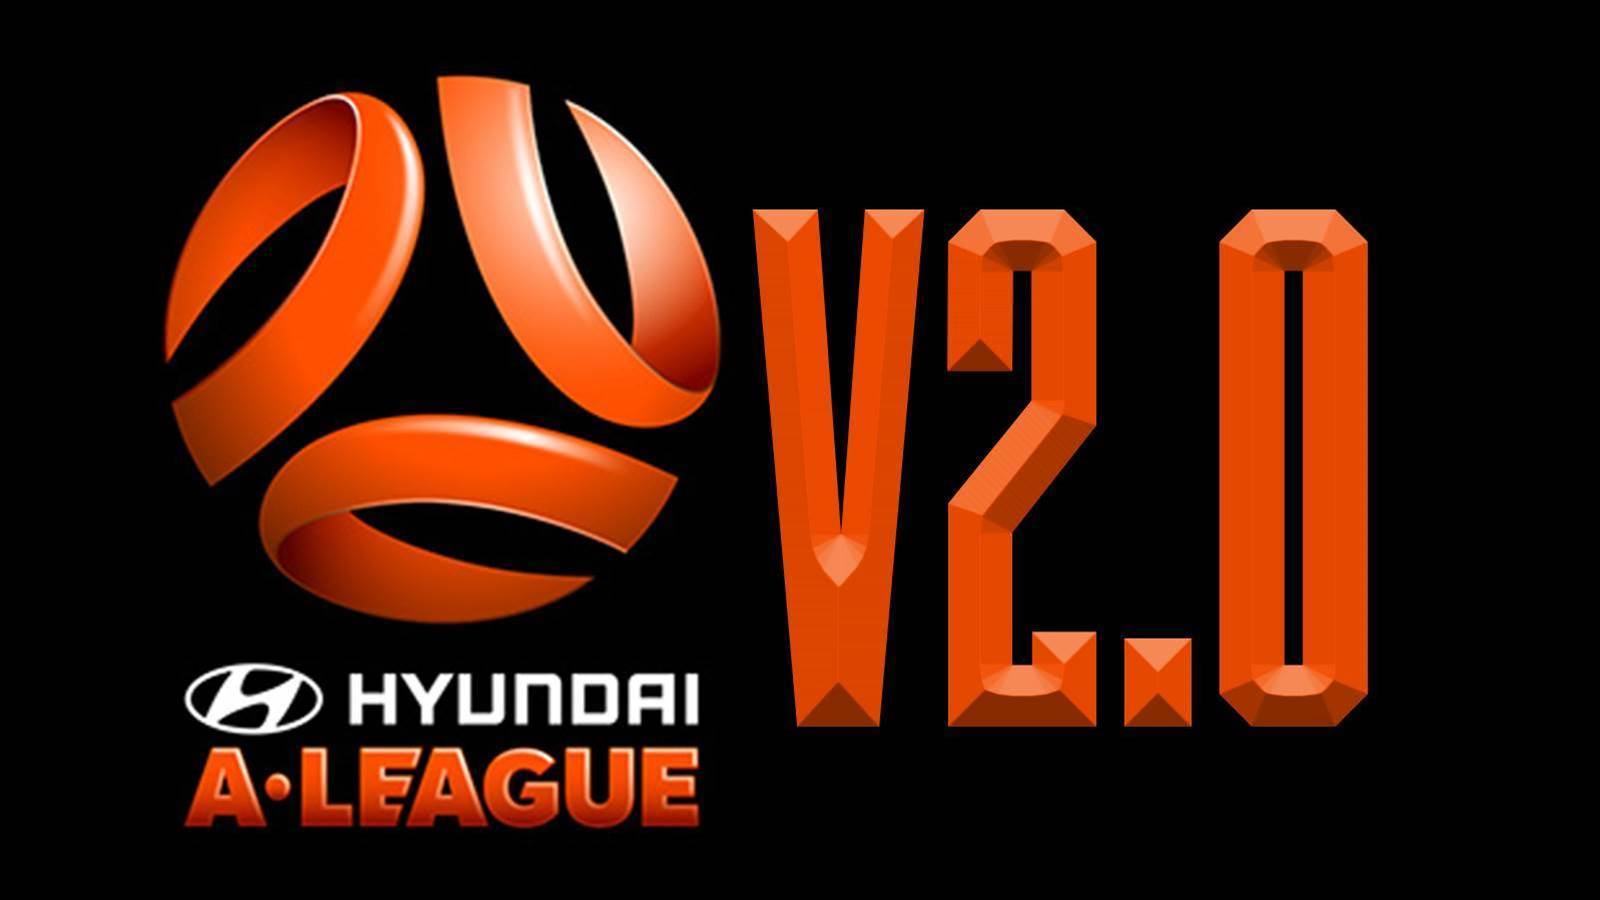 A-League v2 edges closer...